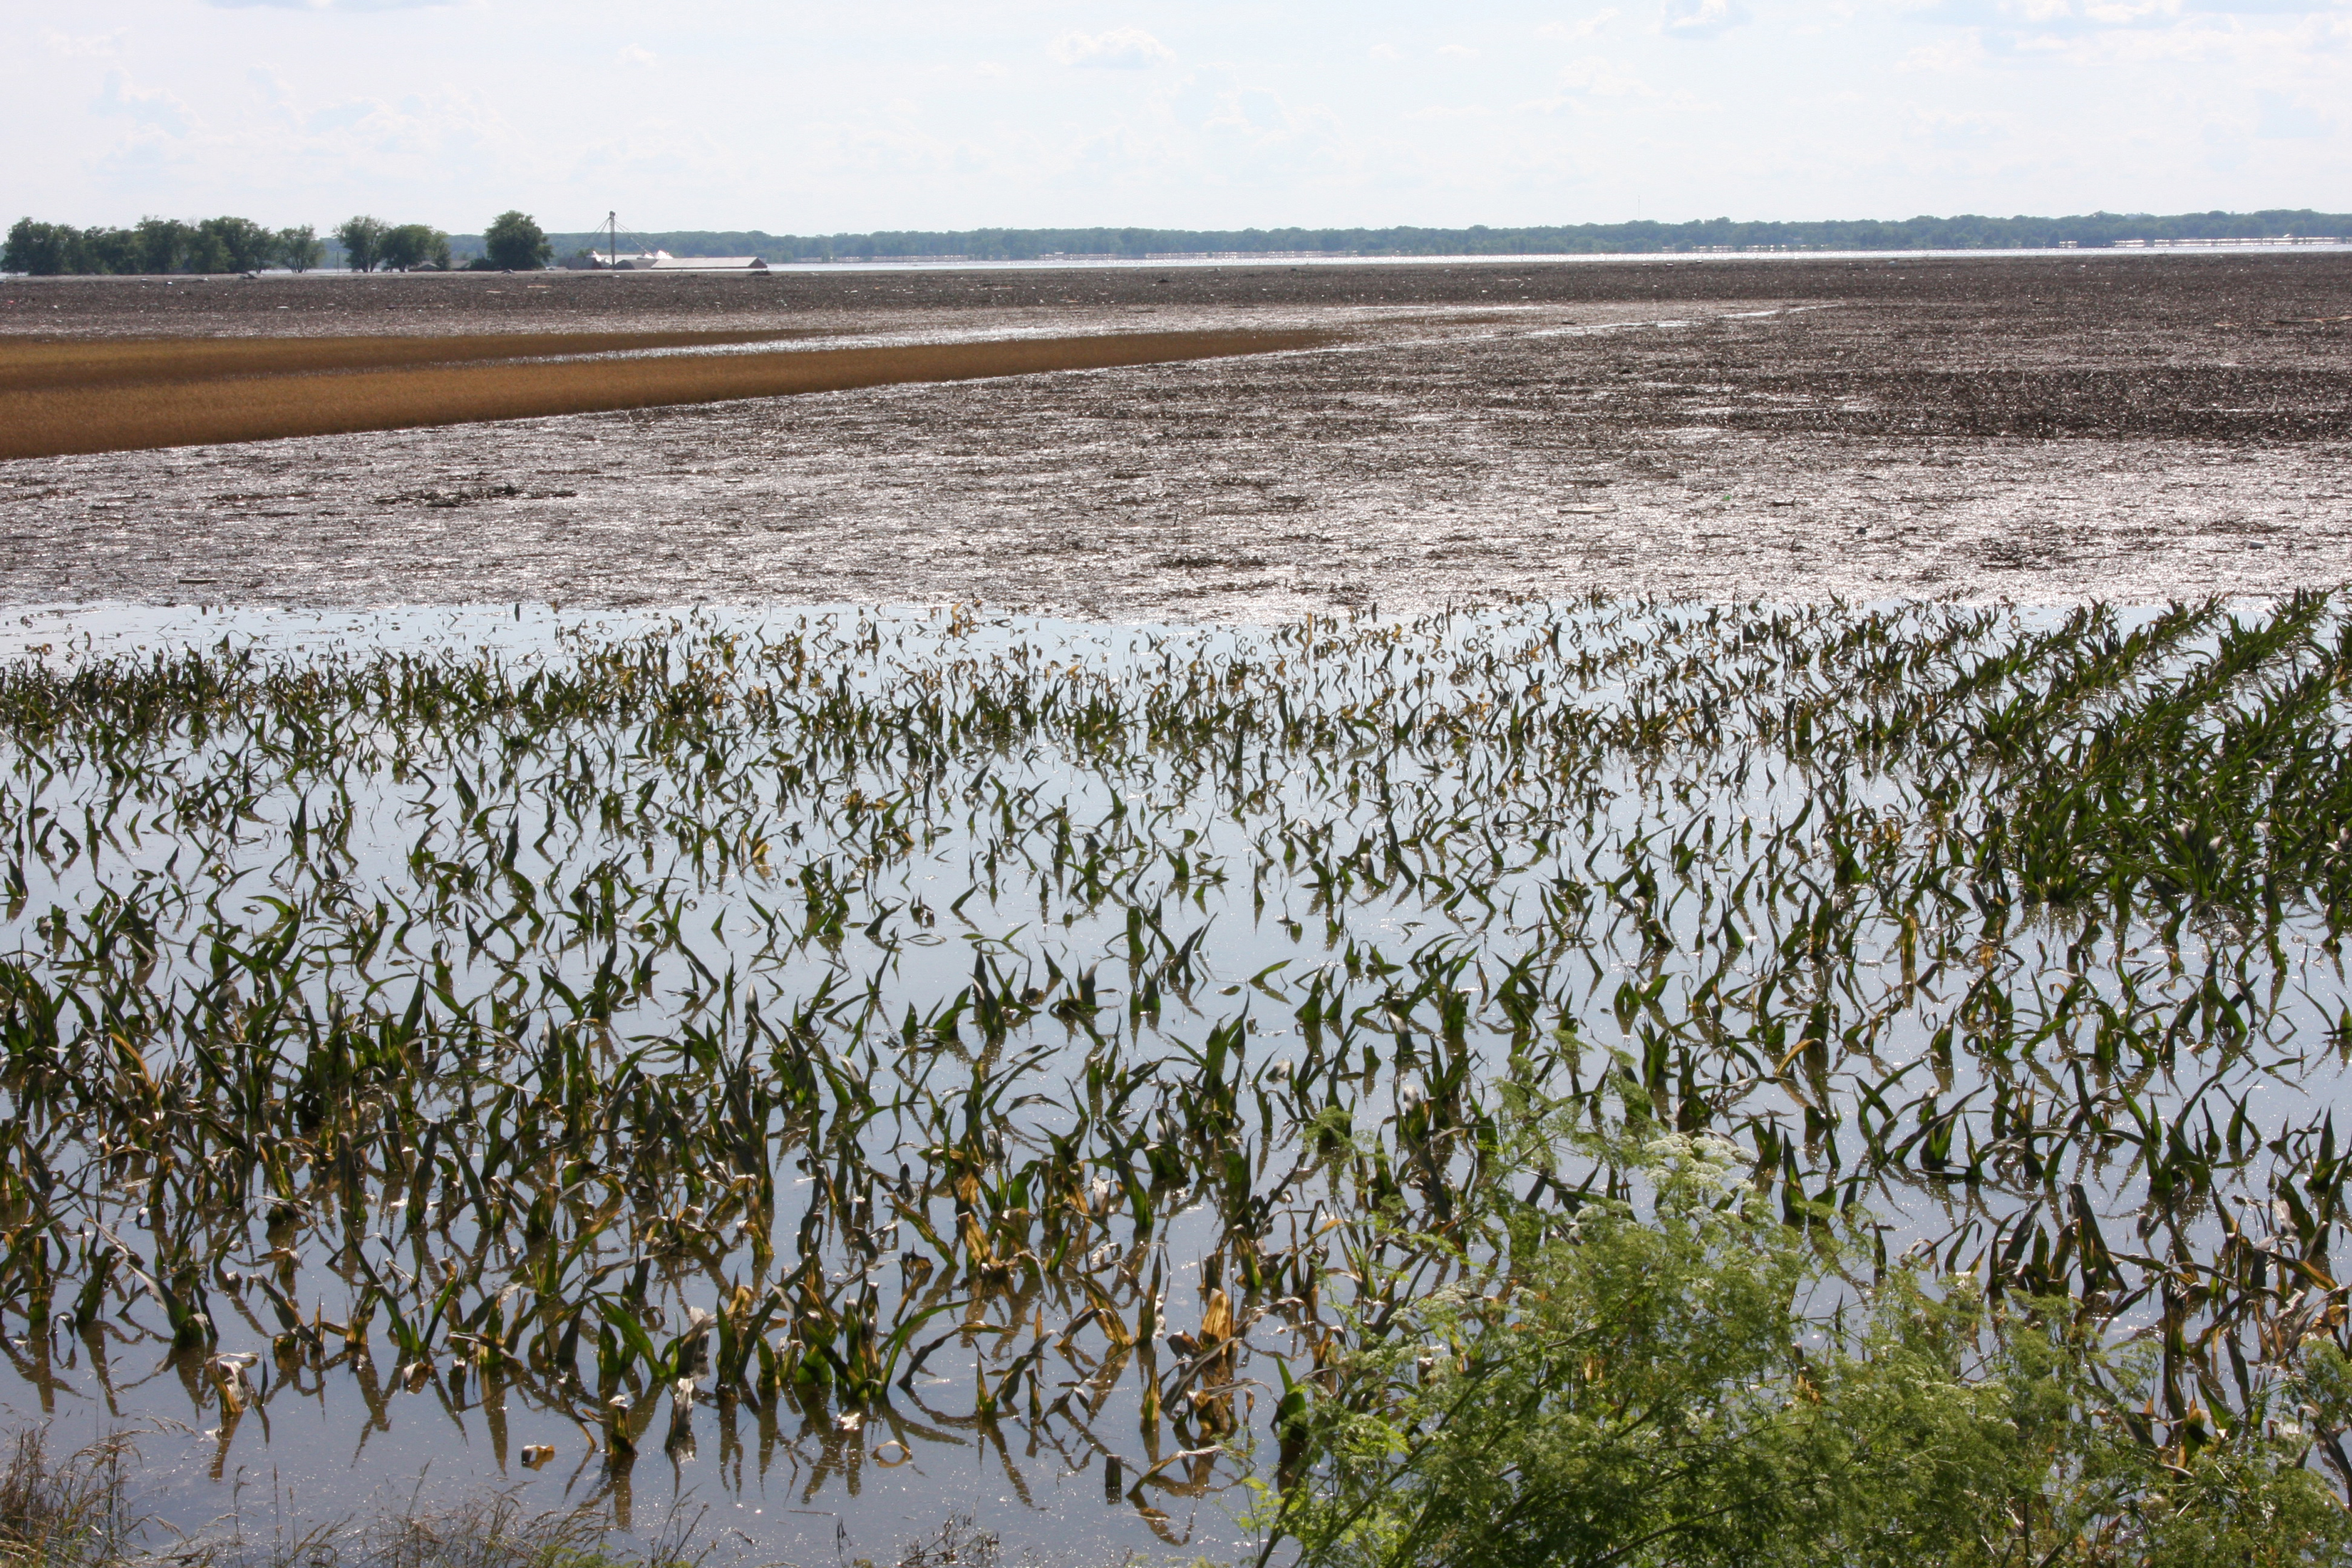 Robert Kaufmann [Public domain] https://upload.wikimedia.org/wikipedia/commons/8/8d/FEMA_-_36365_-_Flooded_corn_field_in_Illinois.jpg